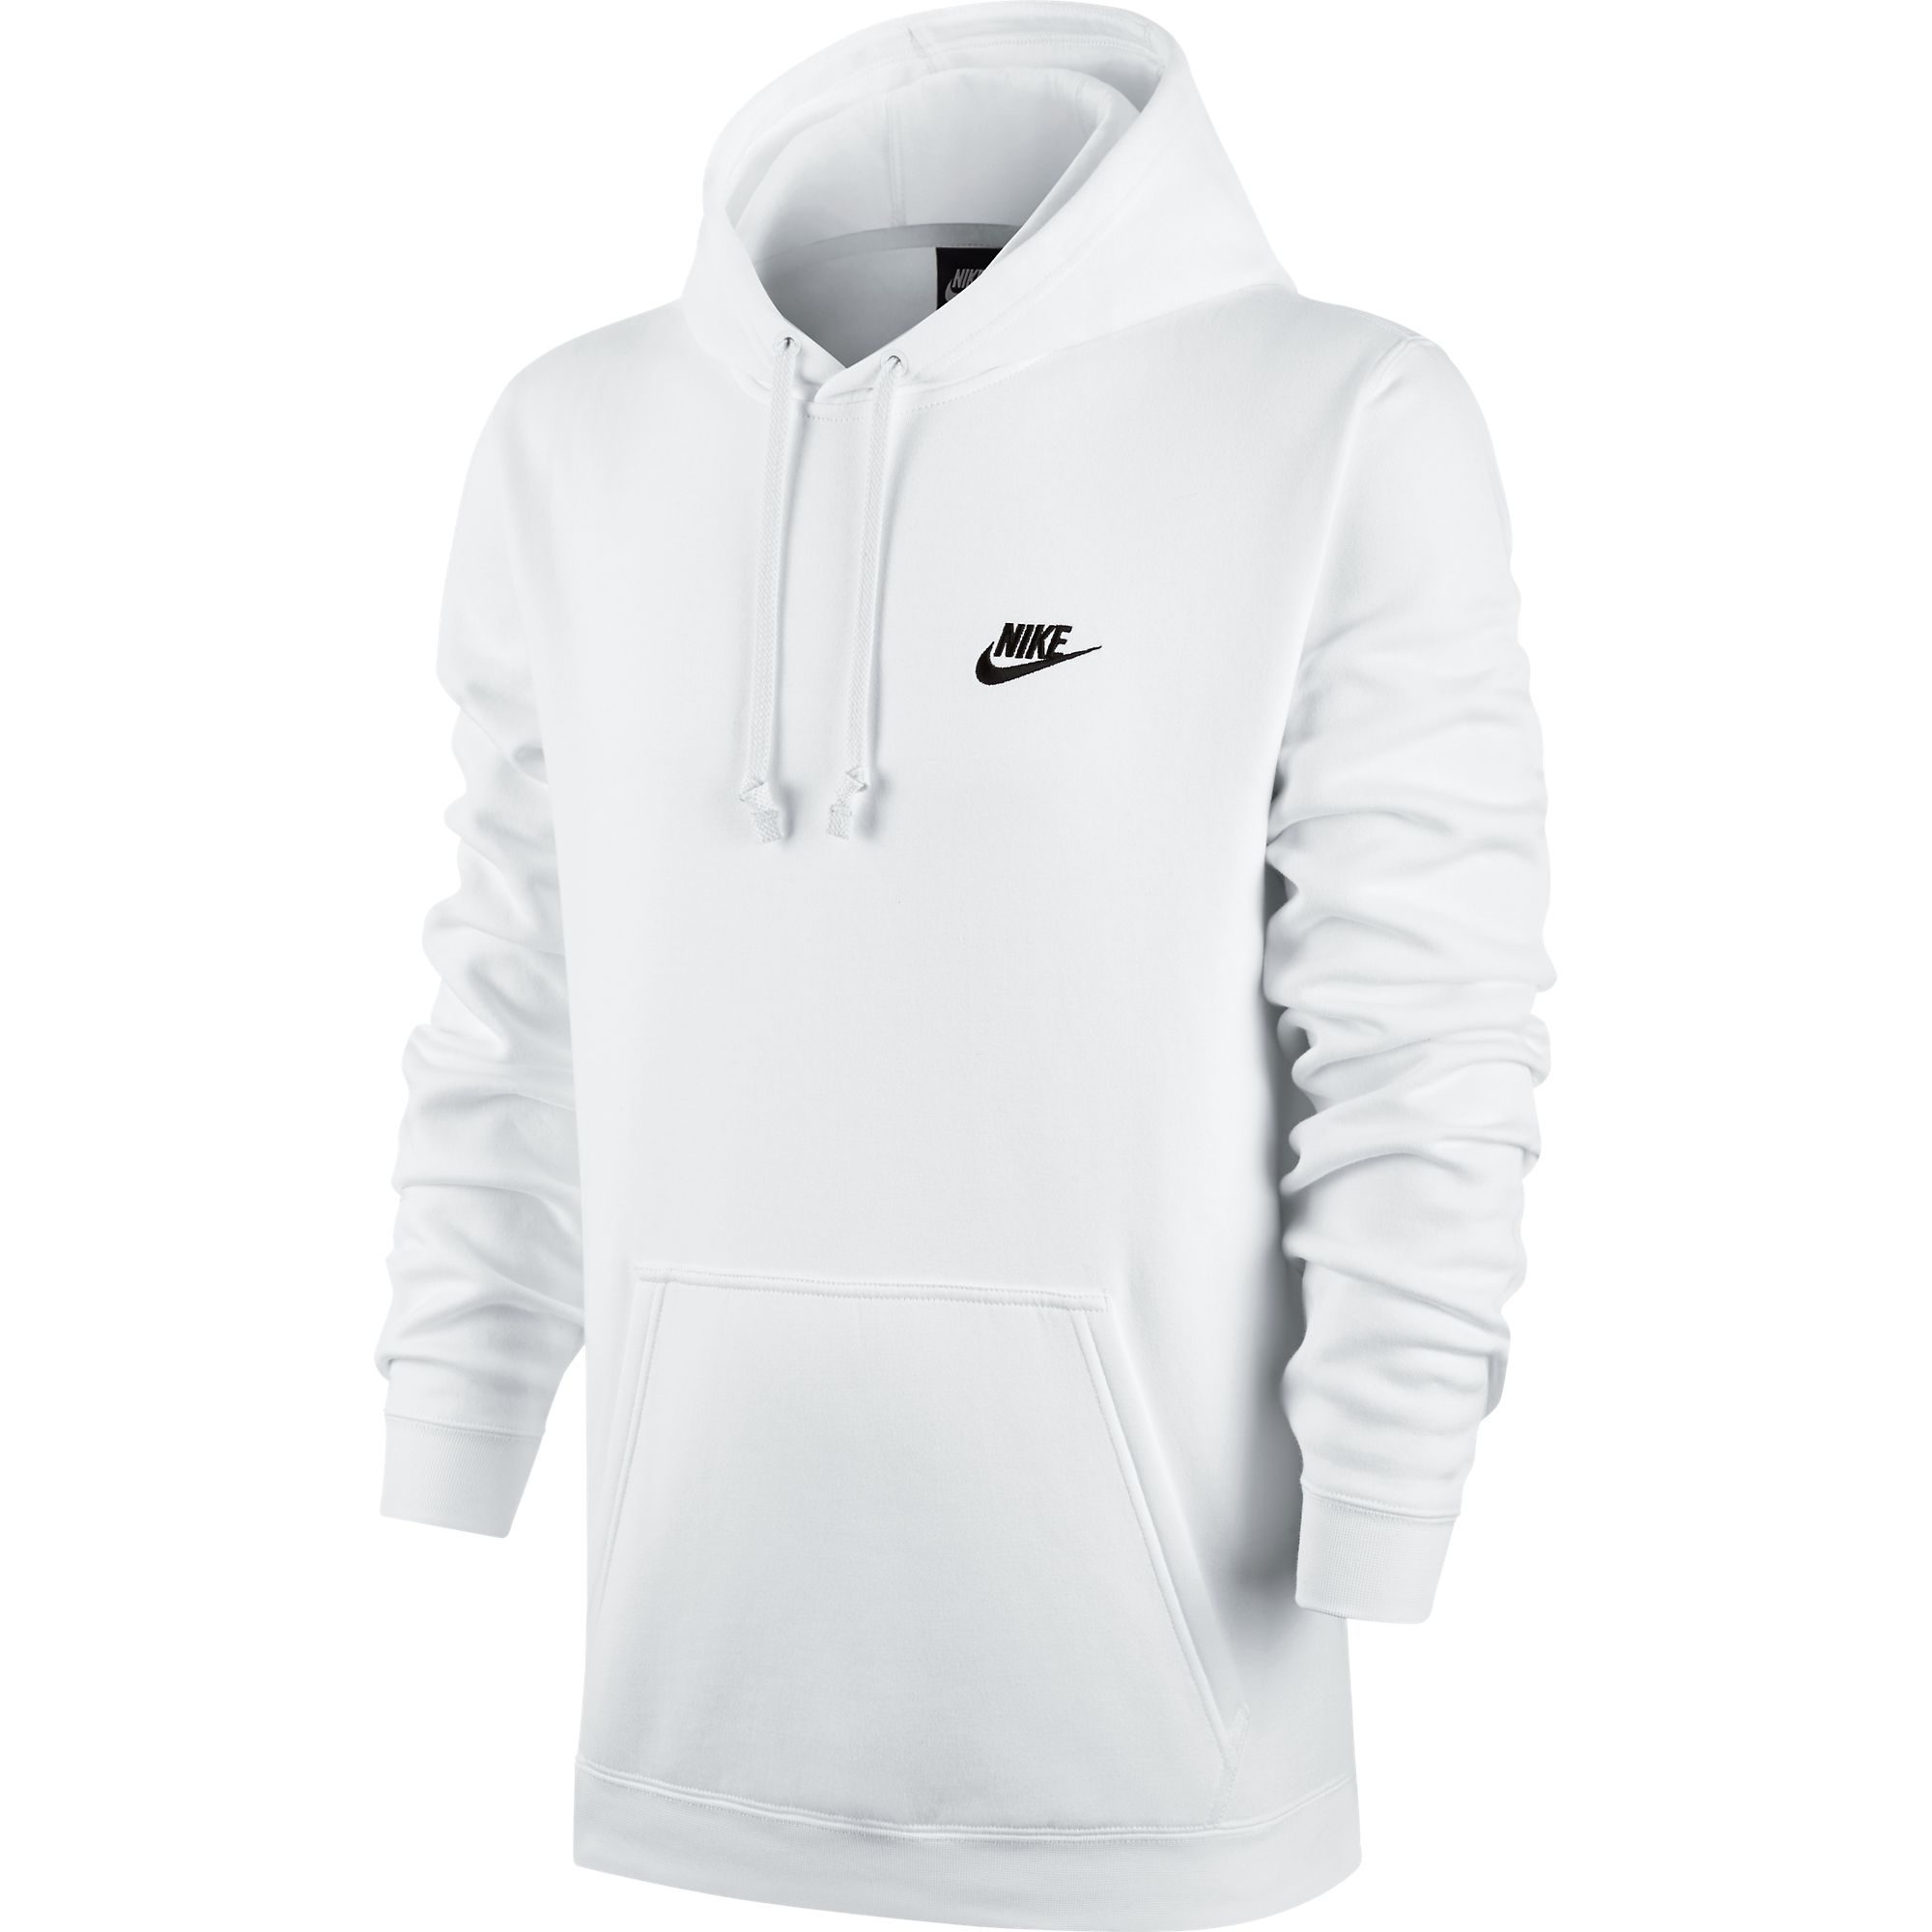 2de17d9a86 nike hoodies black and white